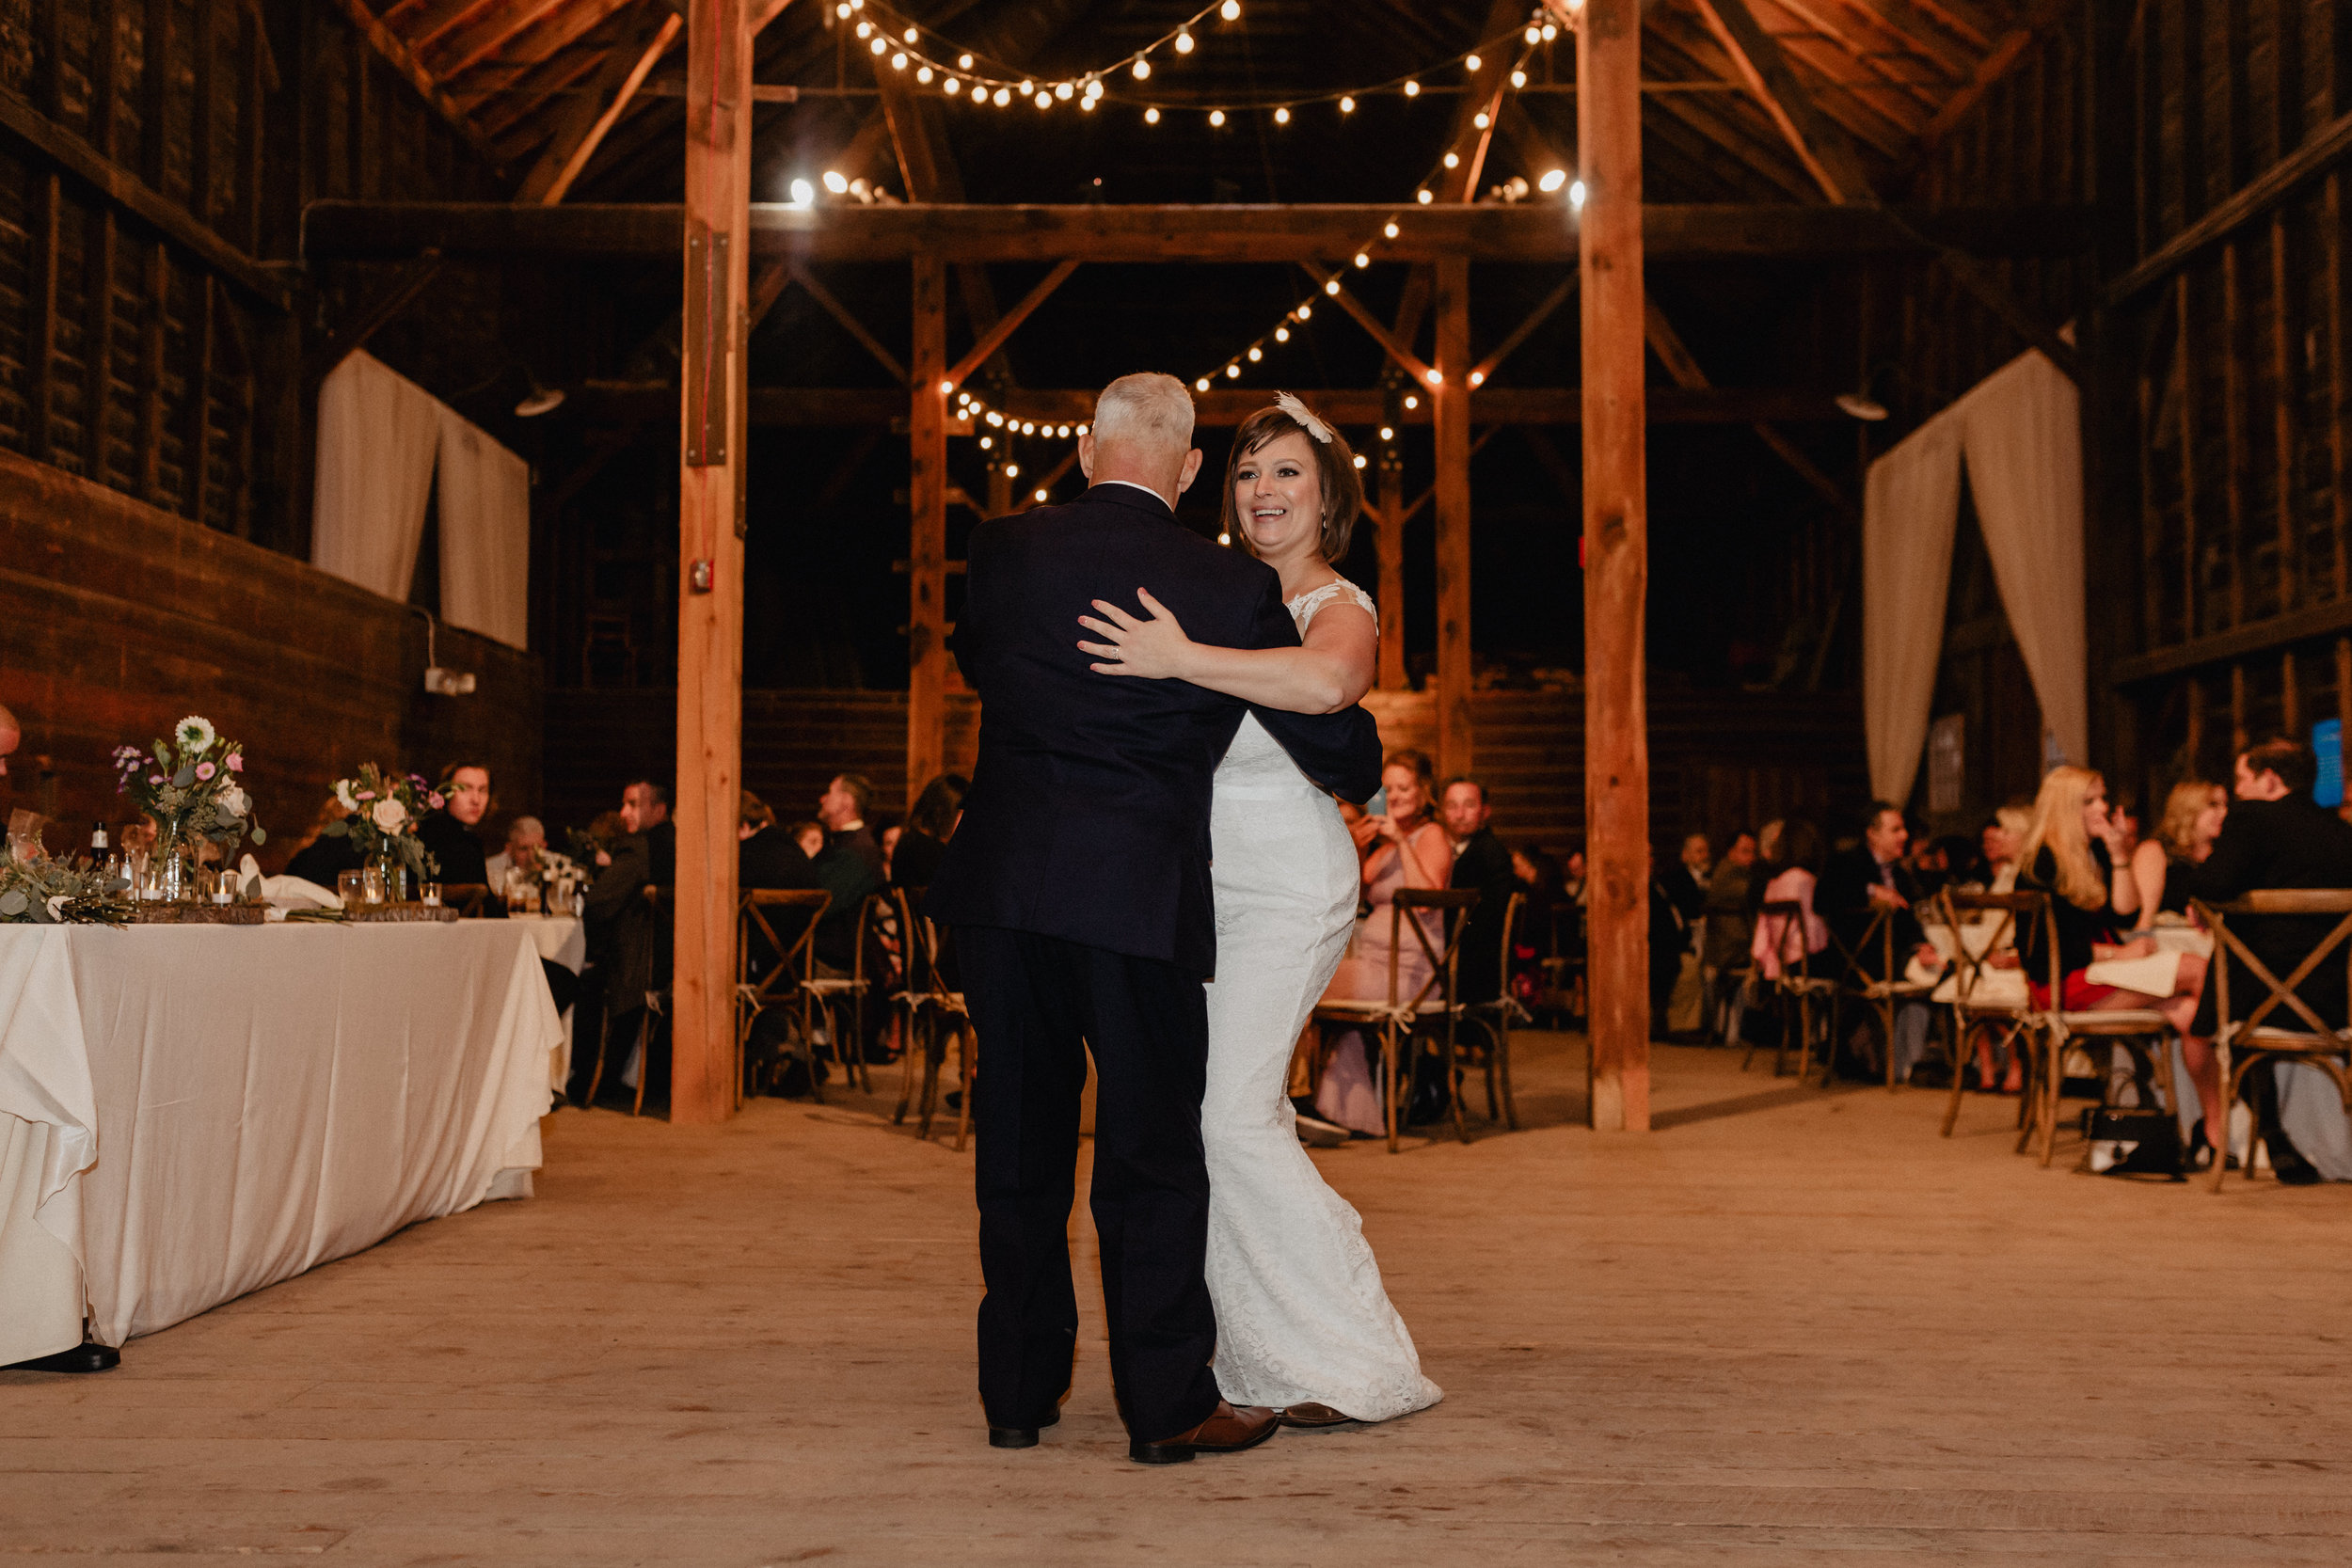 shaker_heritage_barn_wedding_046.jpg